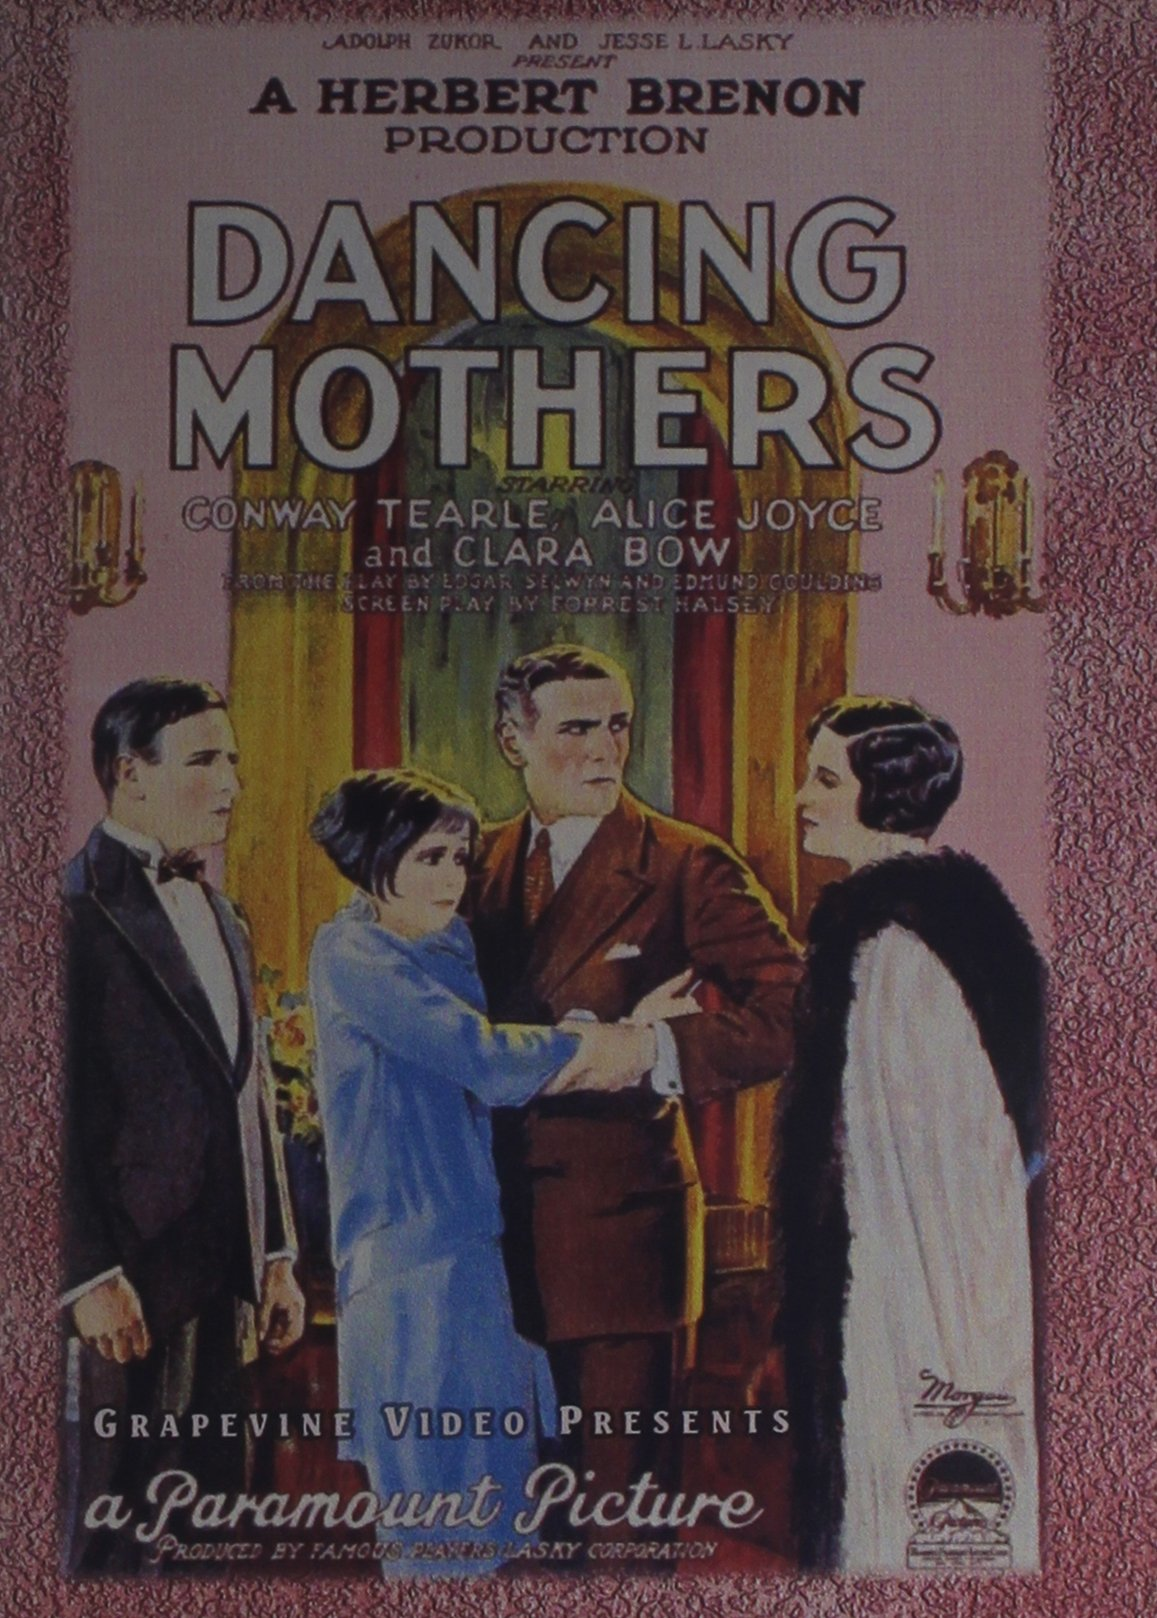 DVD : Dancing Mothers (Black & White, Silent Movie)